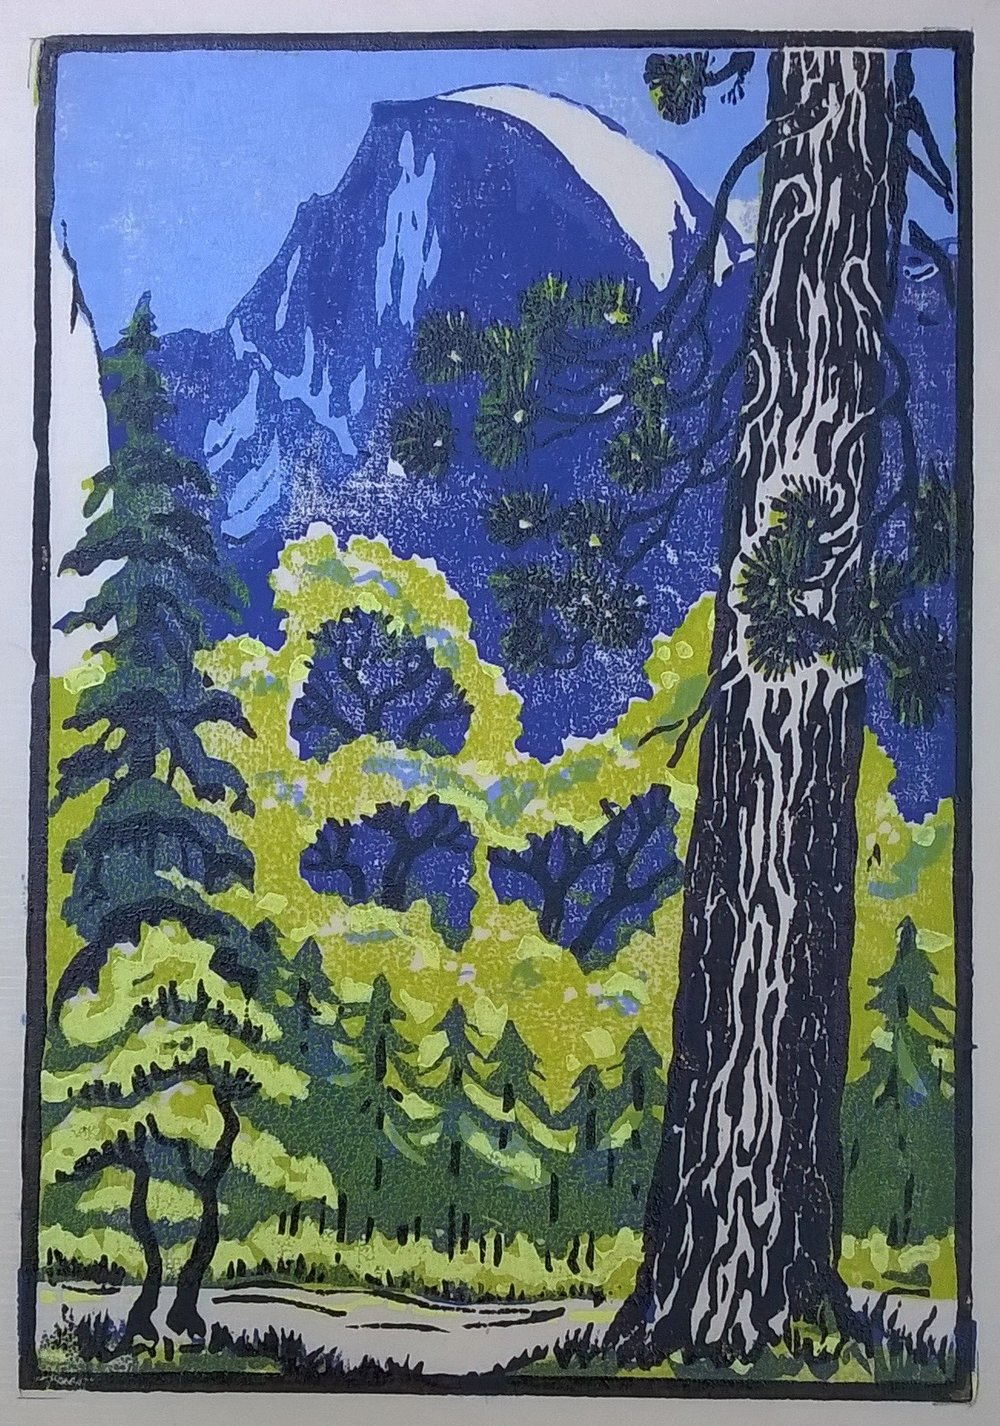 Half Dome Spring, Yosemite | Della Taylor Hoss Woodcut | Printed by Martino Hoss | 5.25 x 7.5 in | $250